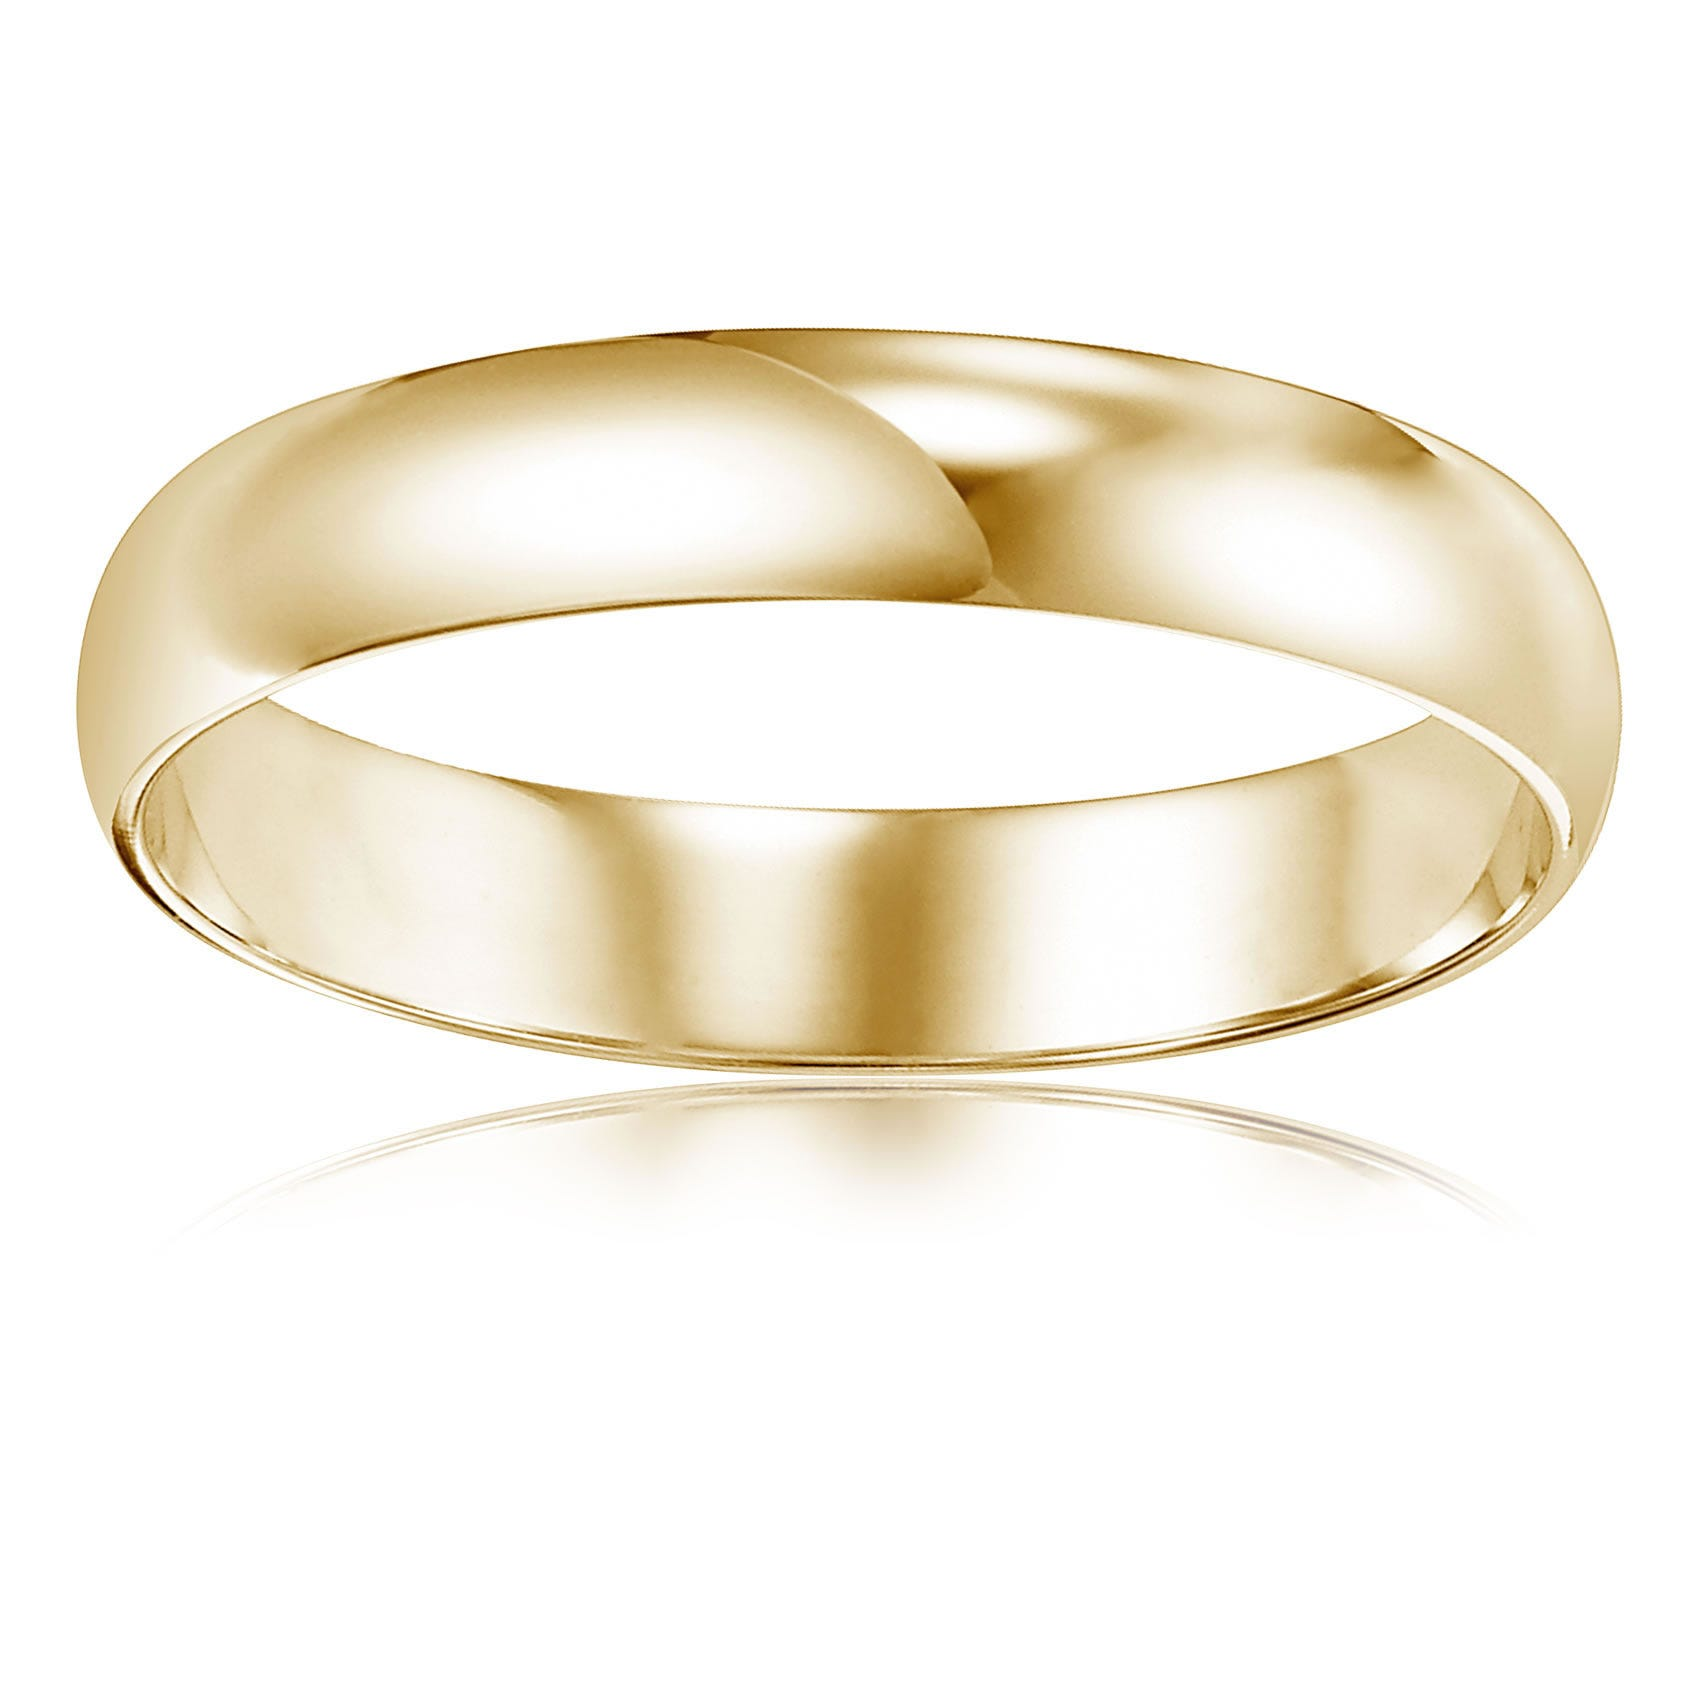 Men's Plain Wedding Band in 10k Yellow Gold